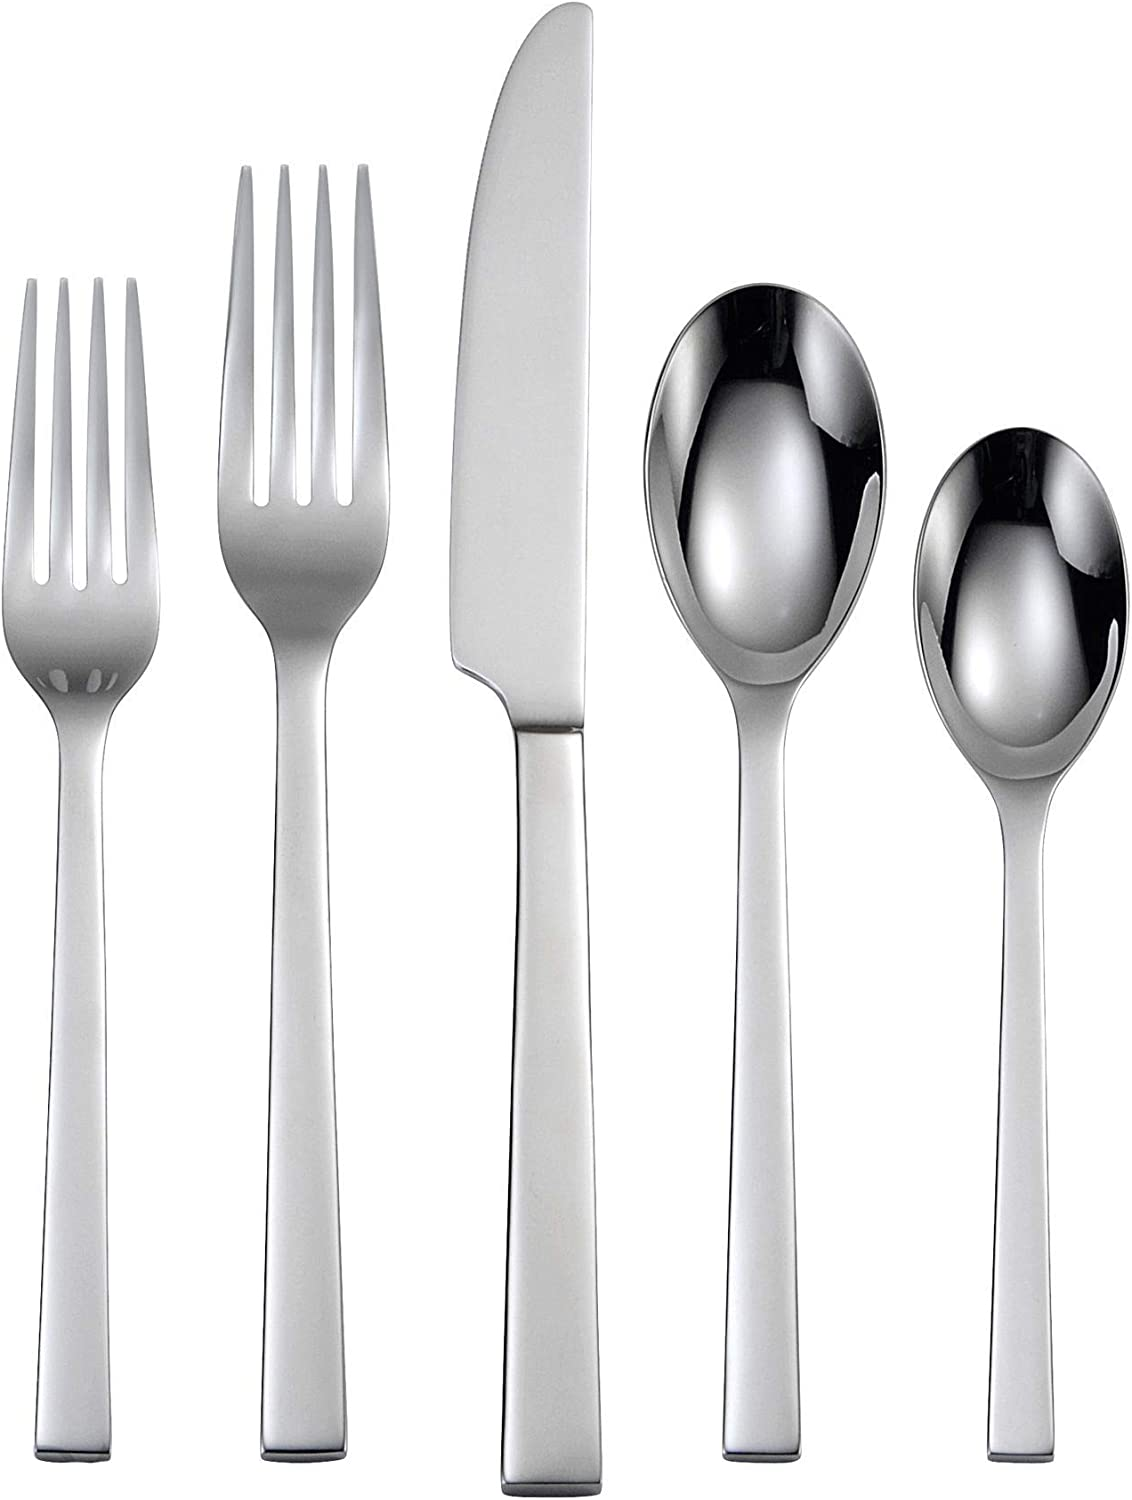 Oneida Chef's Table 20 Piece Everyday Flatware, Service for 4, 18/0 Stainless Steel, Silverware Set